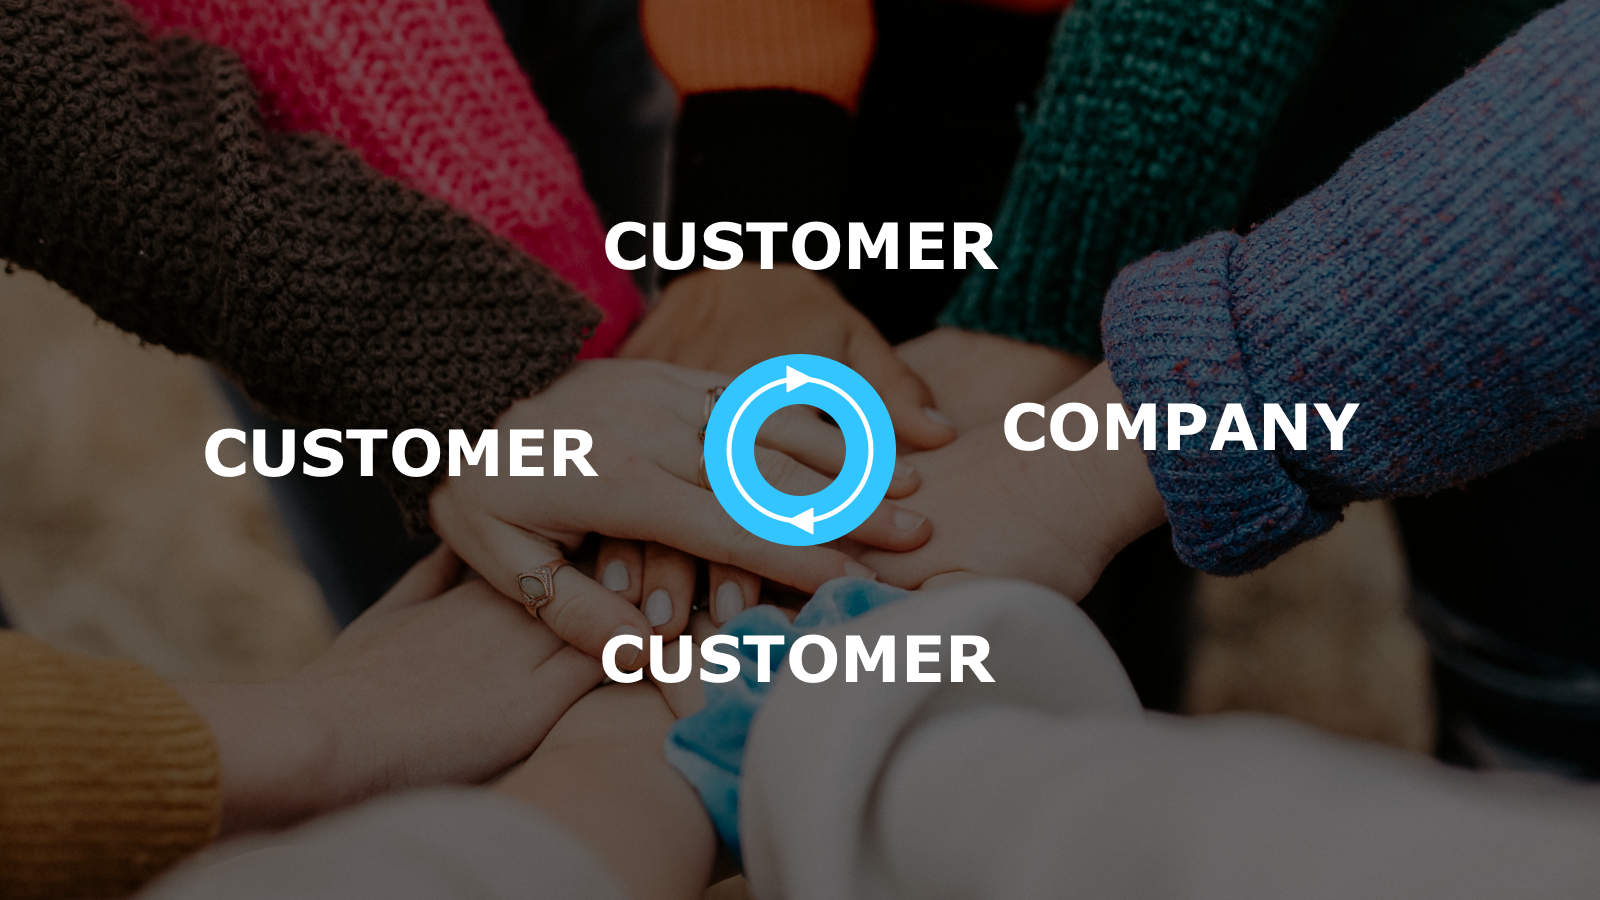 Customer feedback loop between customers and a company